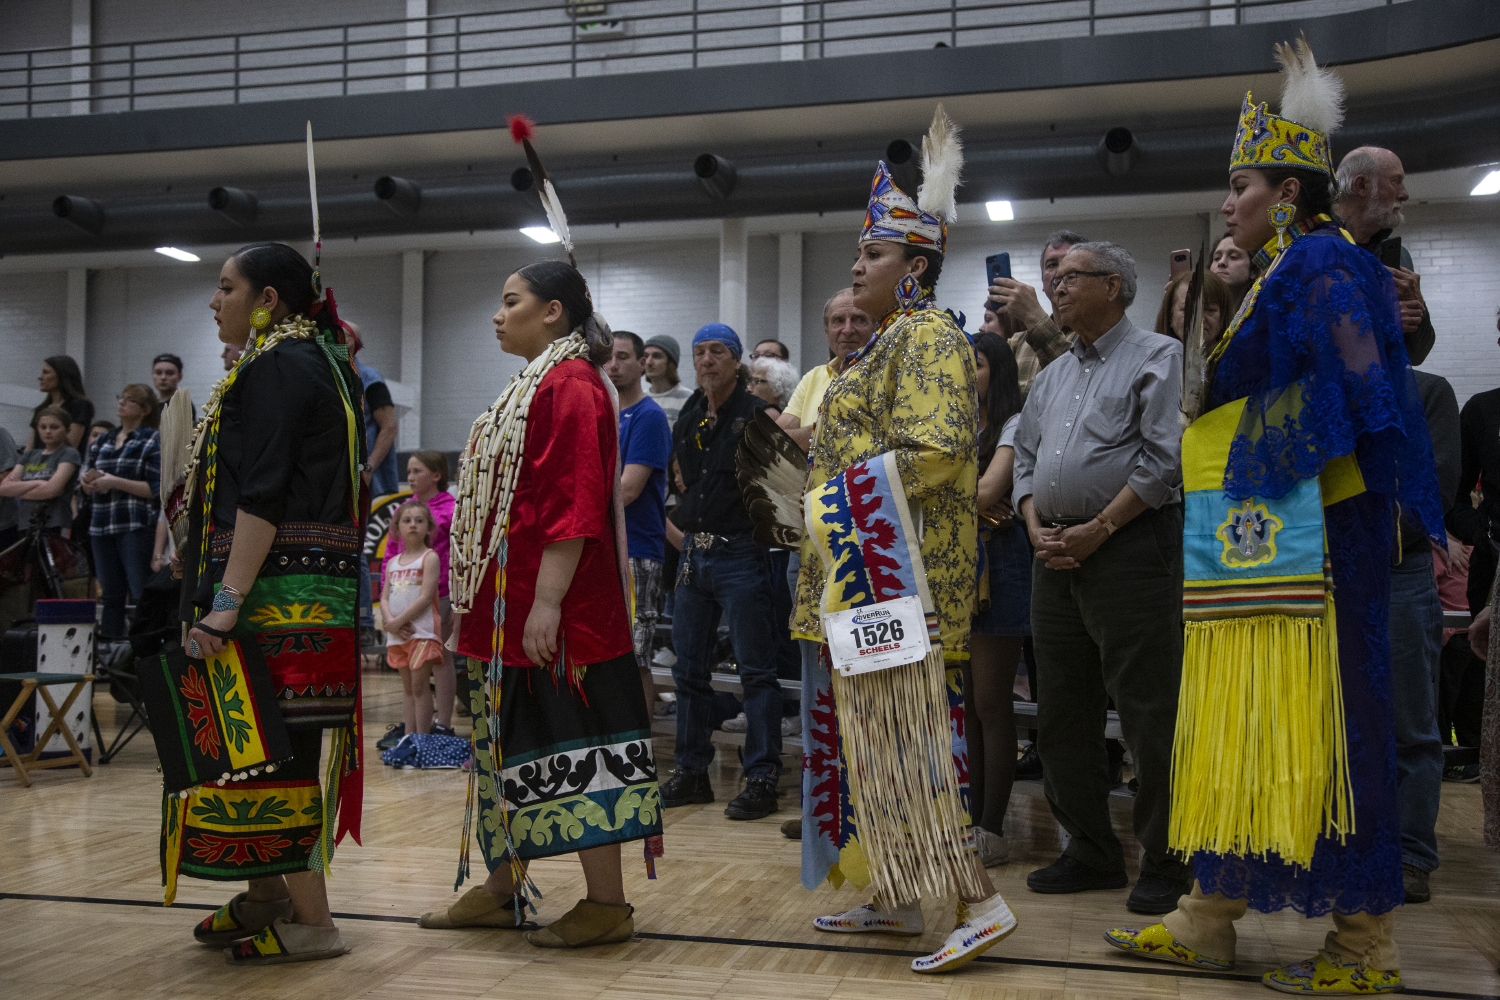 Dancers+perform+in+the+grand+entrance+during+the+25th+annual+University+of+Iowa+Powwow+in+the+Fieldhouse+on+April+20%2C+2019.+Hosted+by+the+Native+American+Student+Association%2C+participants+could+buy+traditional+food+and+clothing%2C+and+sign+up+to+perform+traditional+song+and+dance.